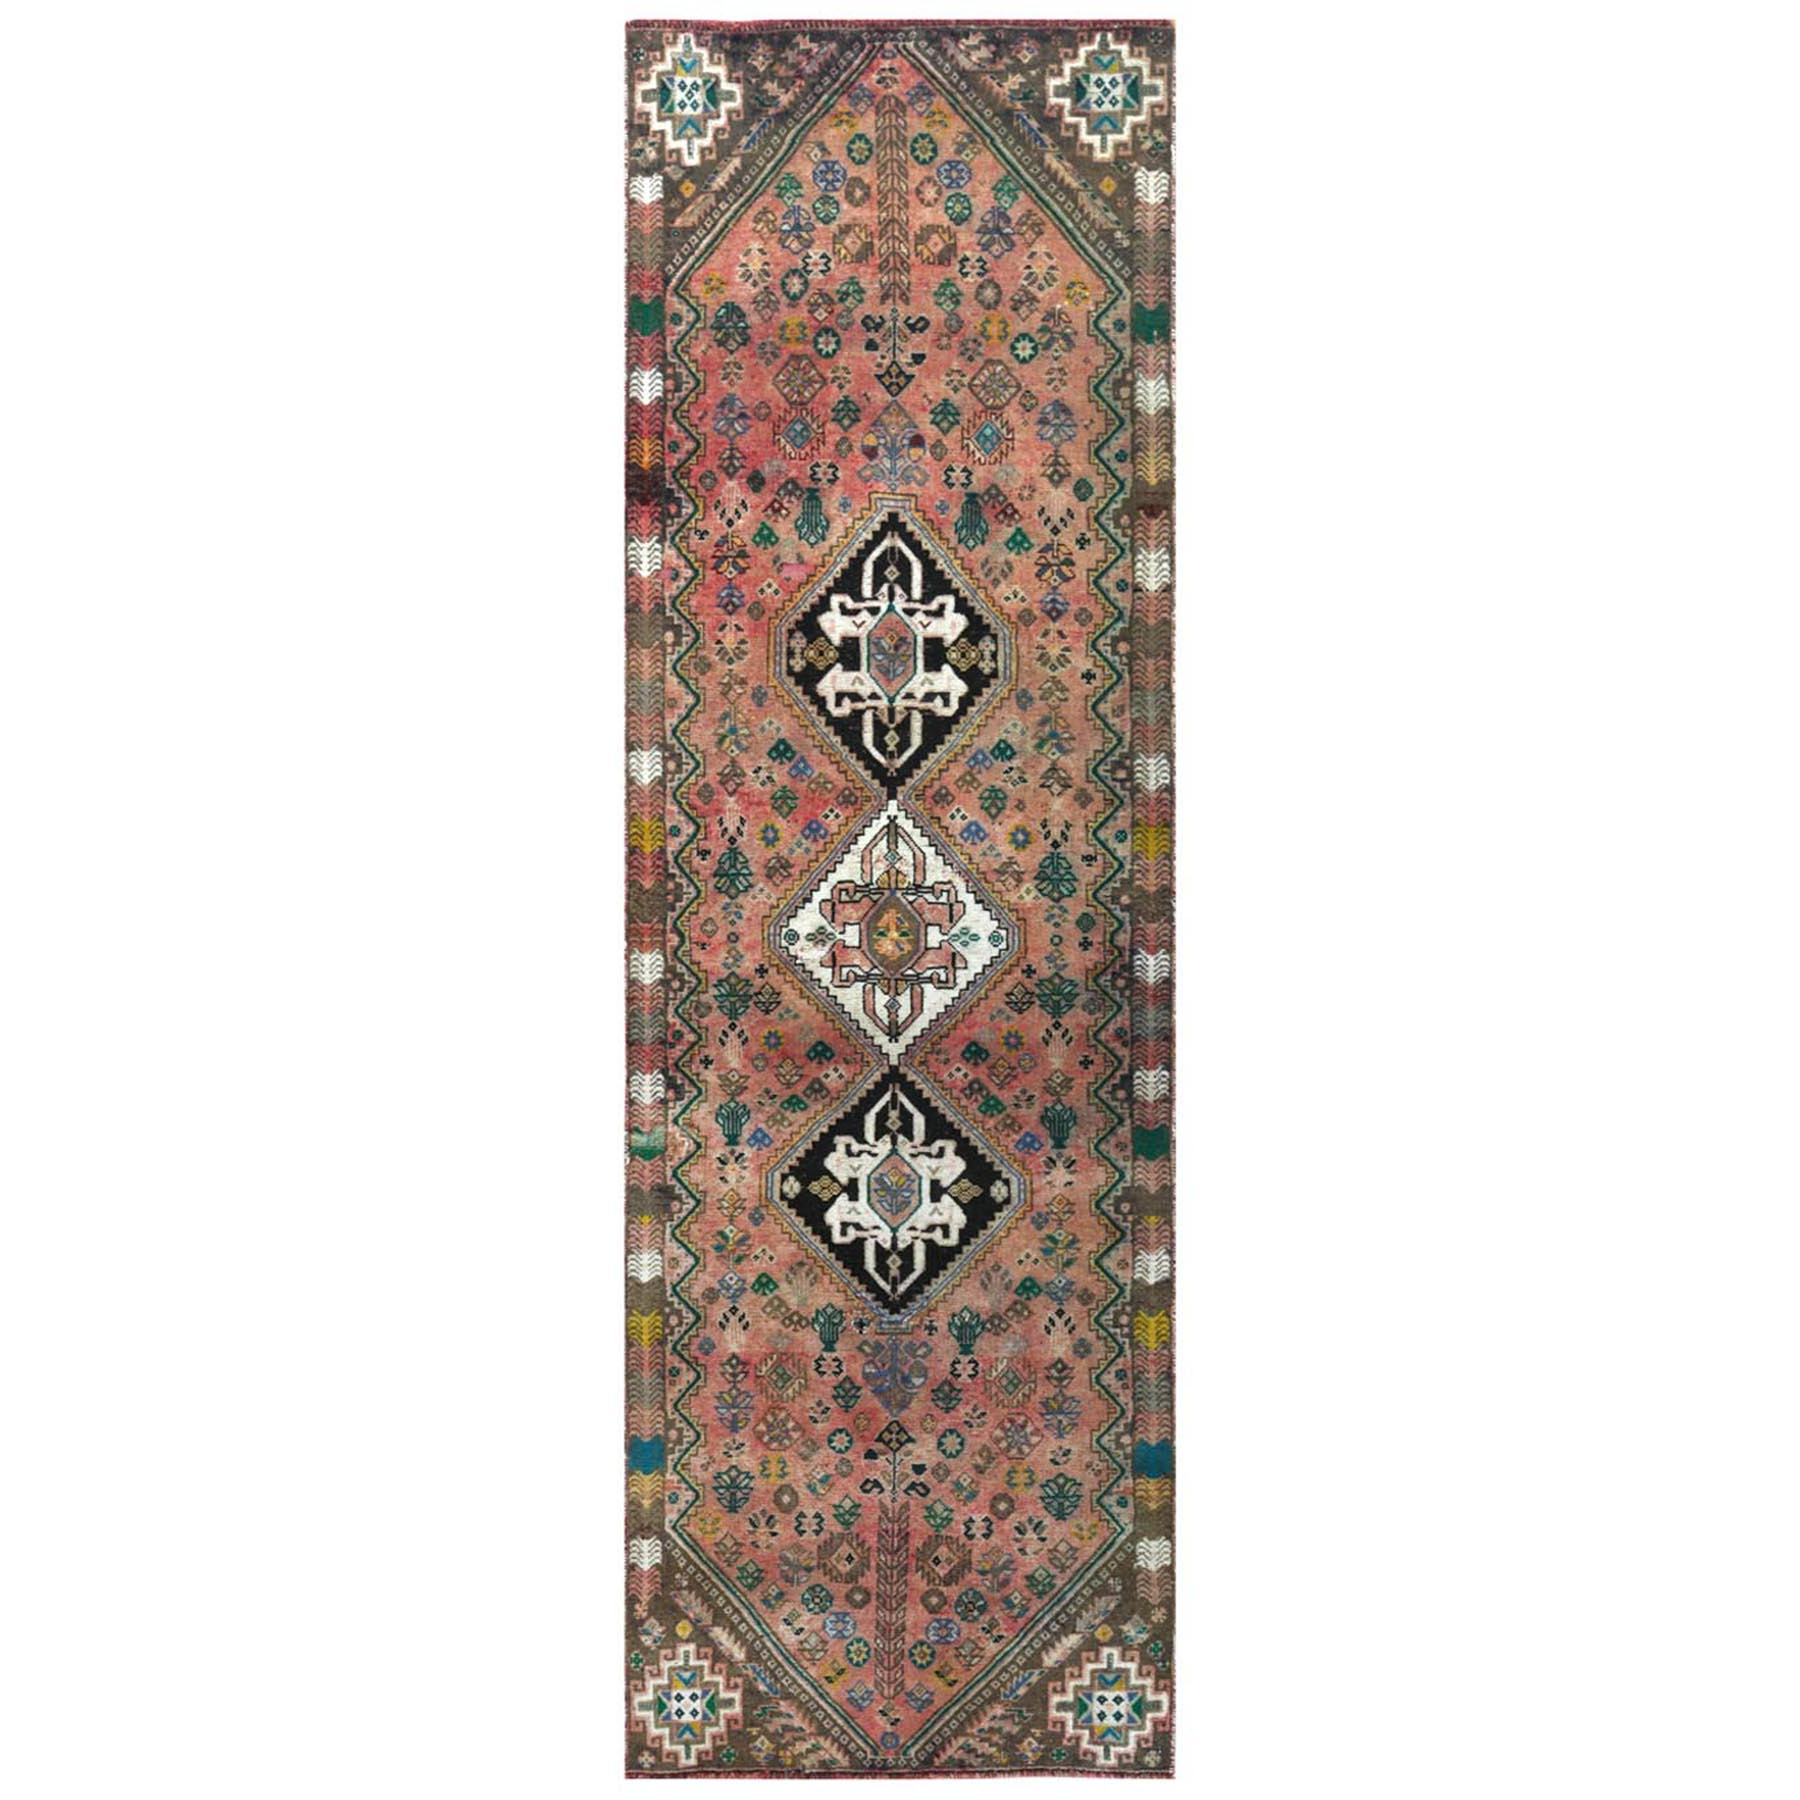 "2'9""x8'8"" Bohemian Coral Color Persian Shiraz Vintage Worn Down Hand Woven Organic Wool Clean Oriental Runner Rug"